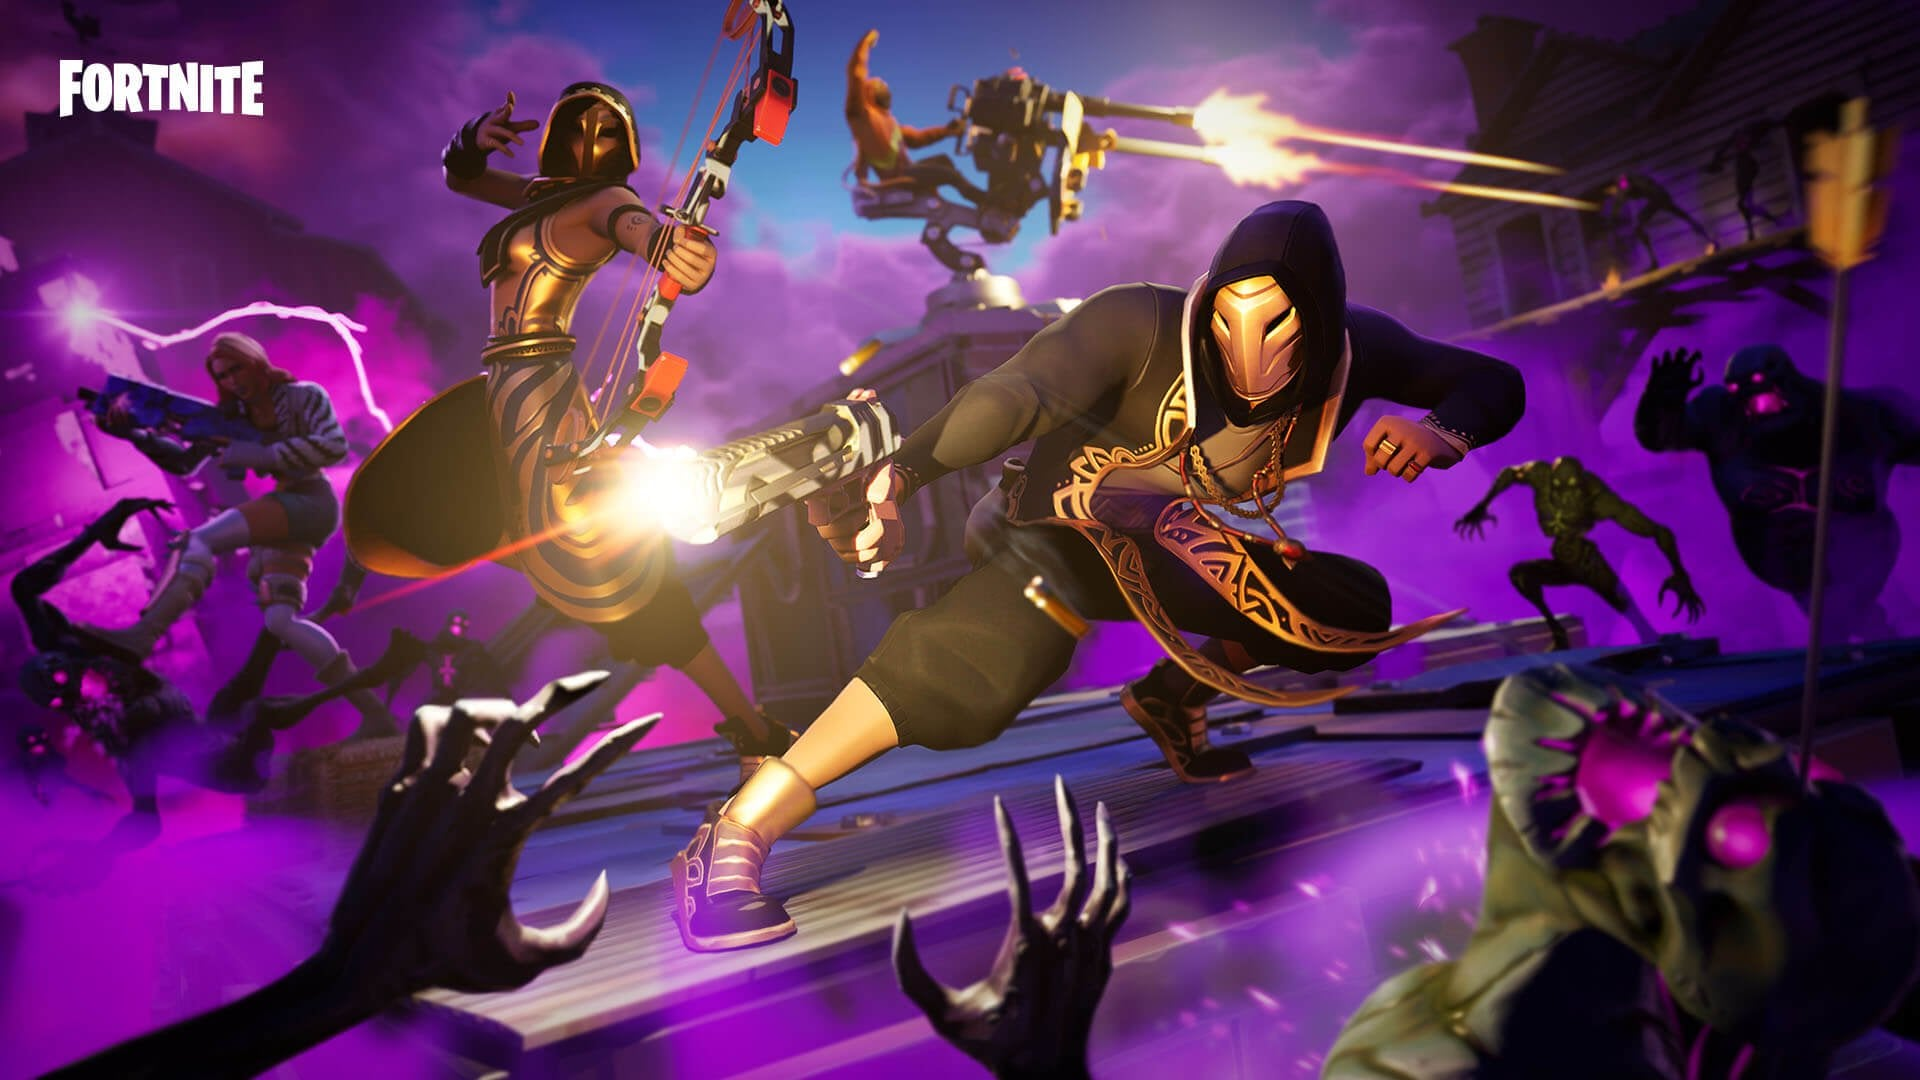 Fortnite Battle Royale Update Version 2 26 Patch Notes v9 30 For PS4